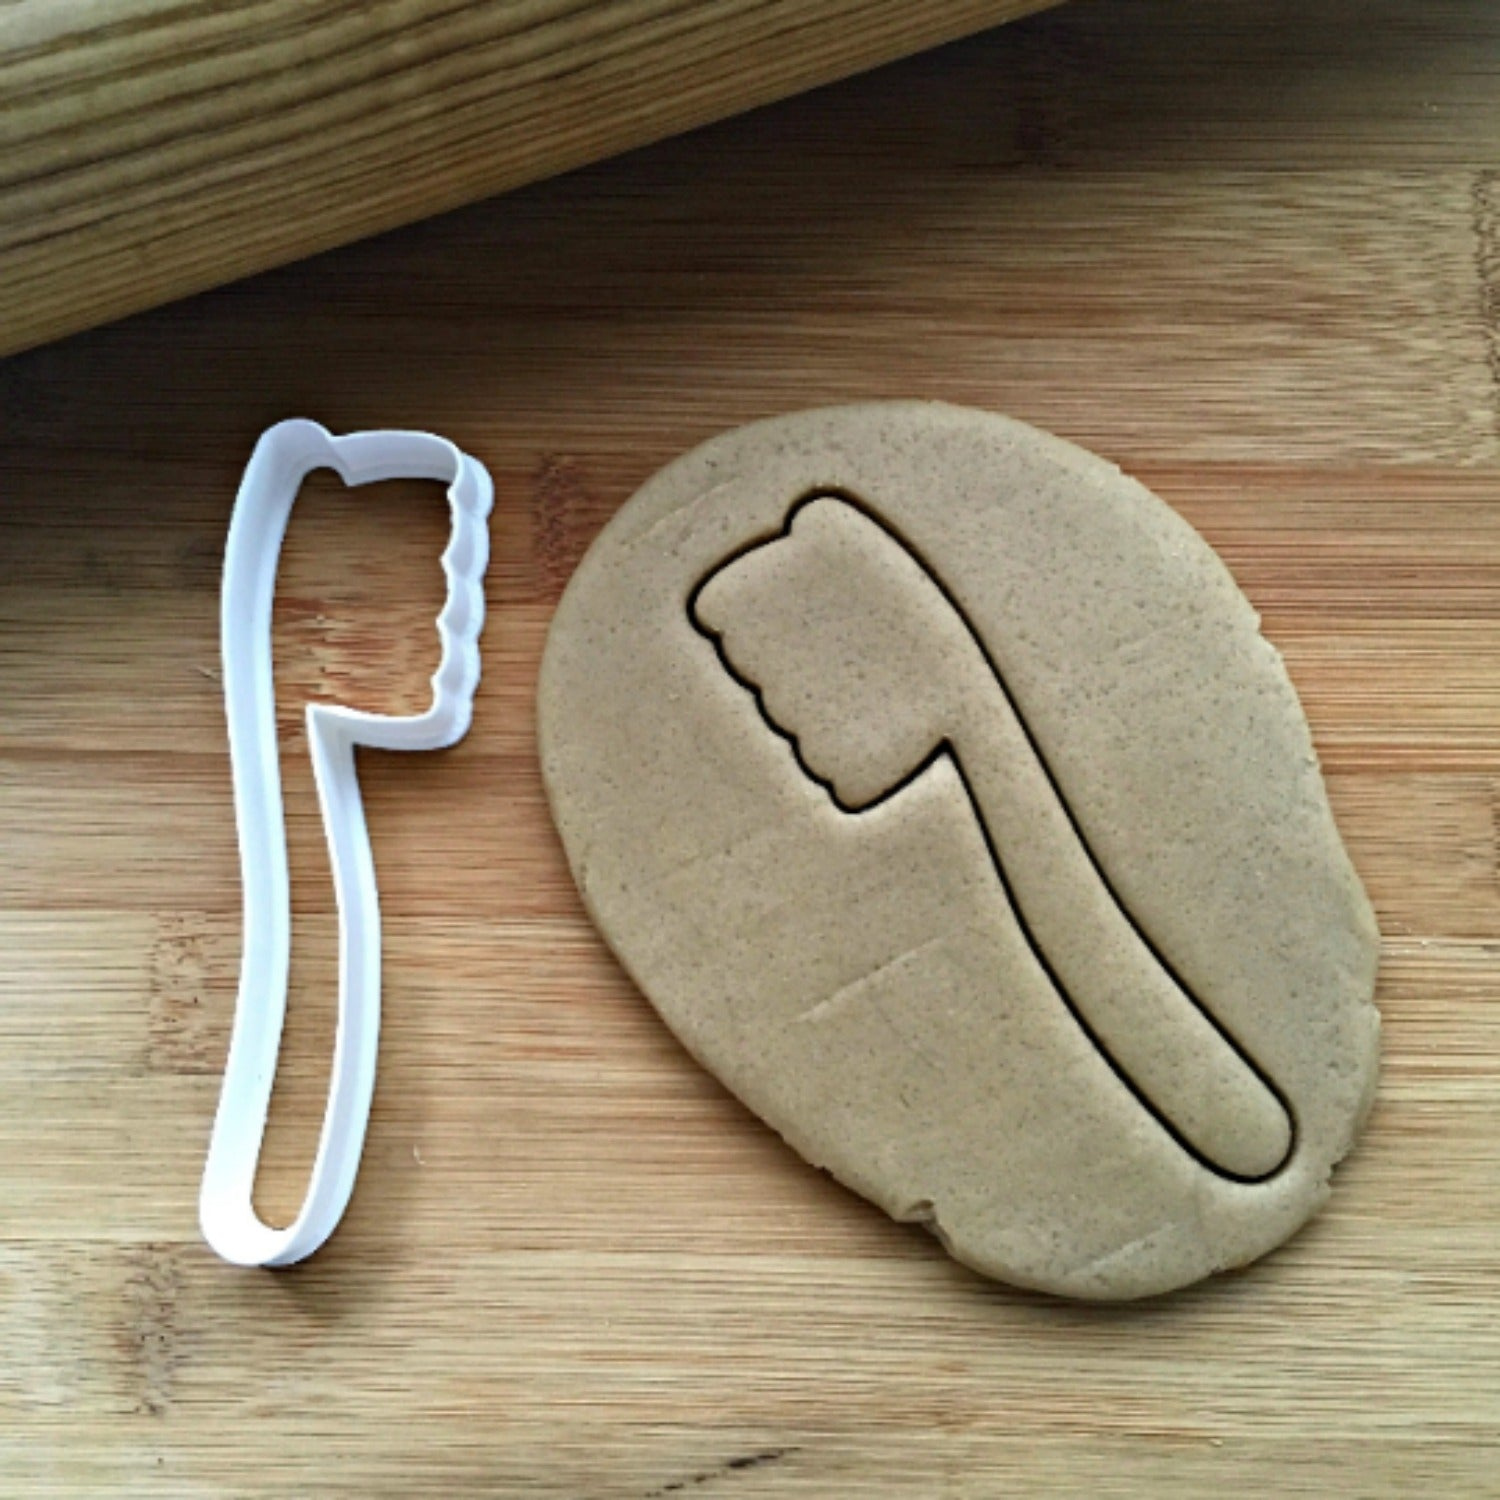 Toothbrush Cookie Cutter/Dishwasher Safe